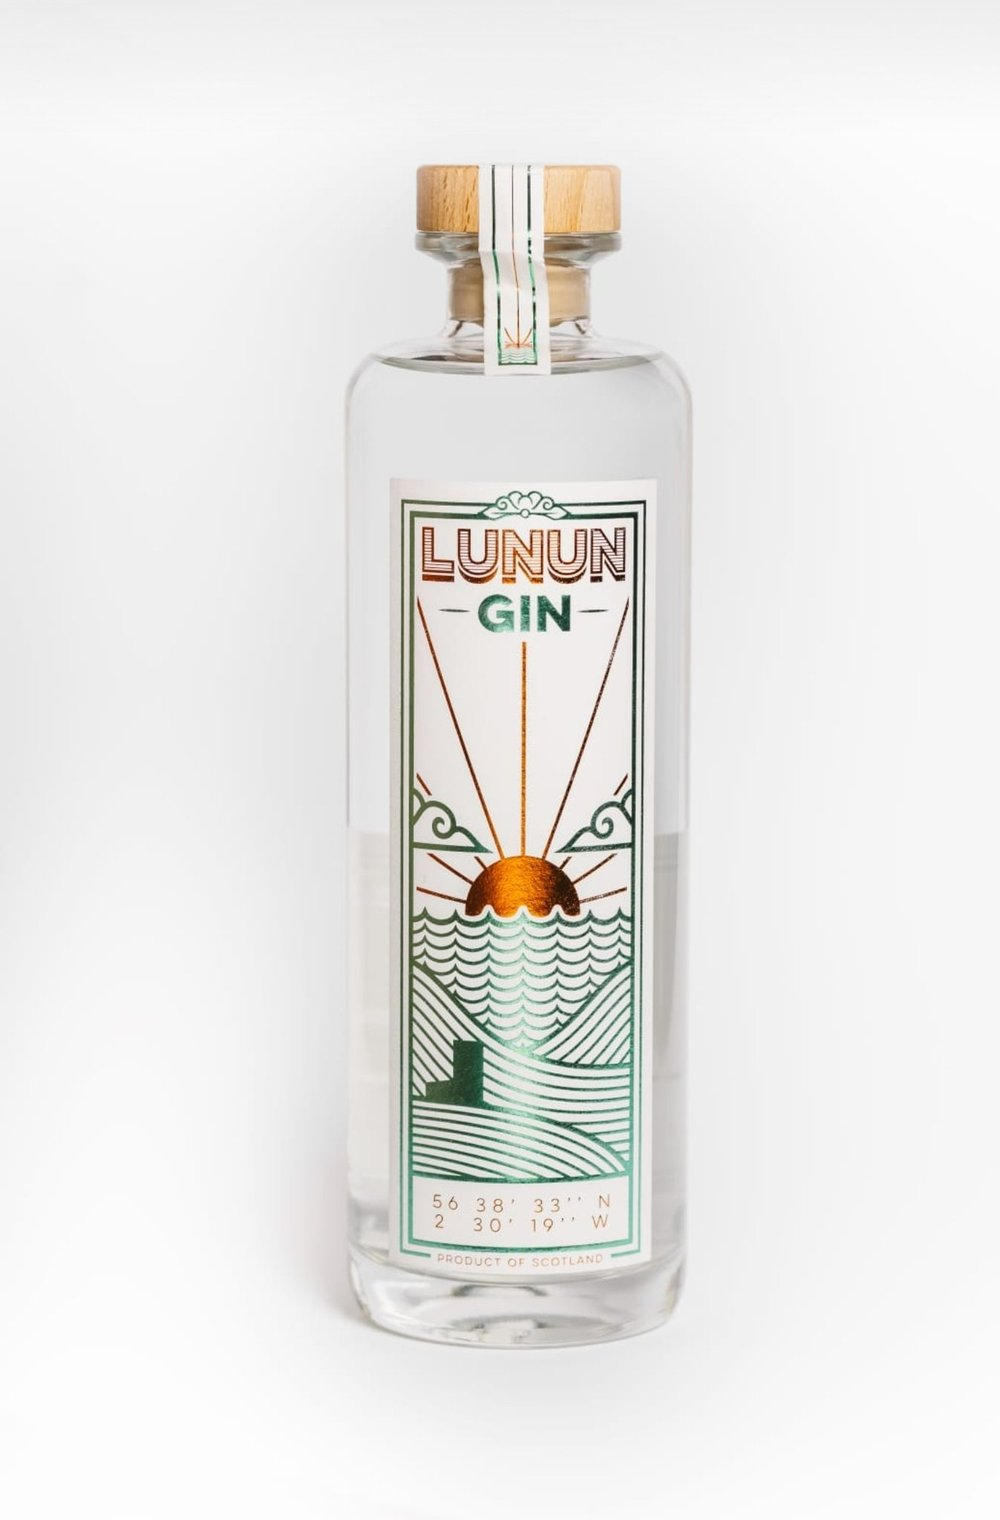 LUNUN GIN 70CL BY DEAN BANKS